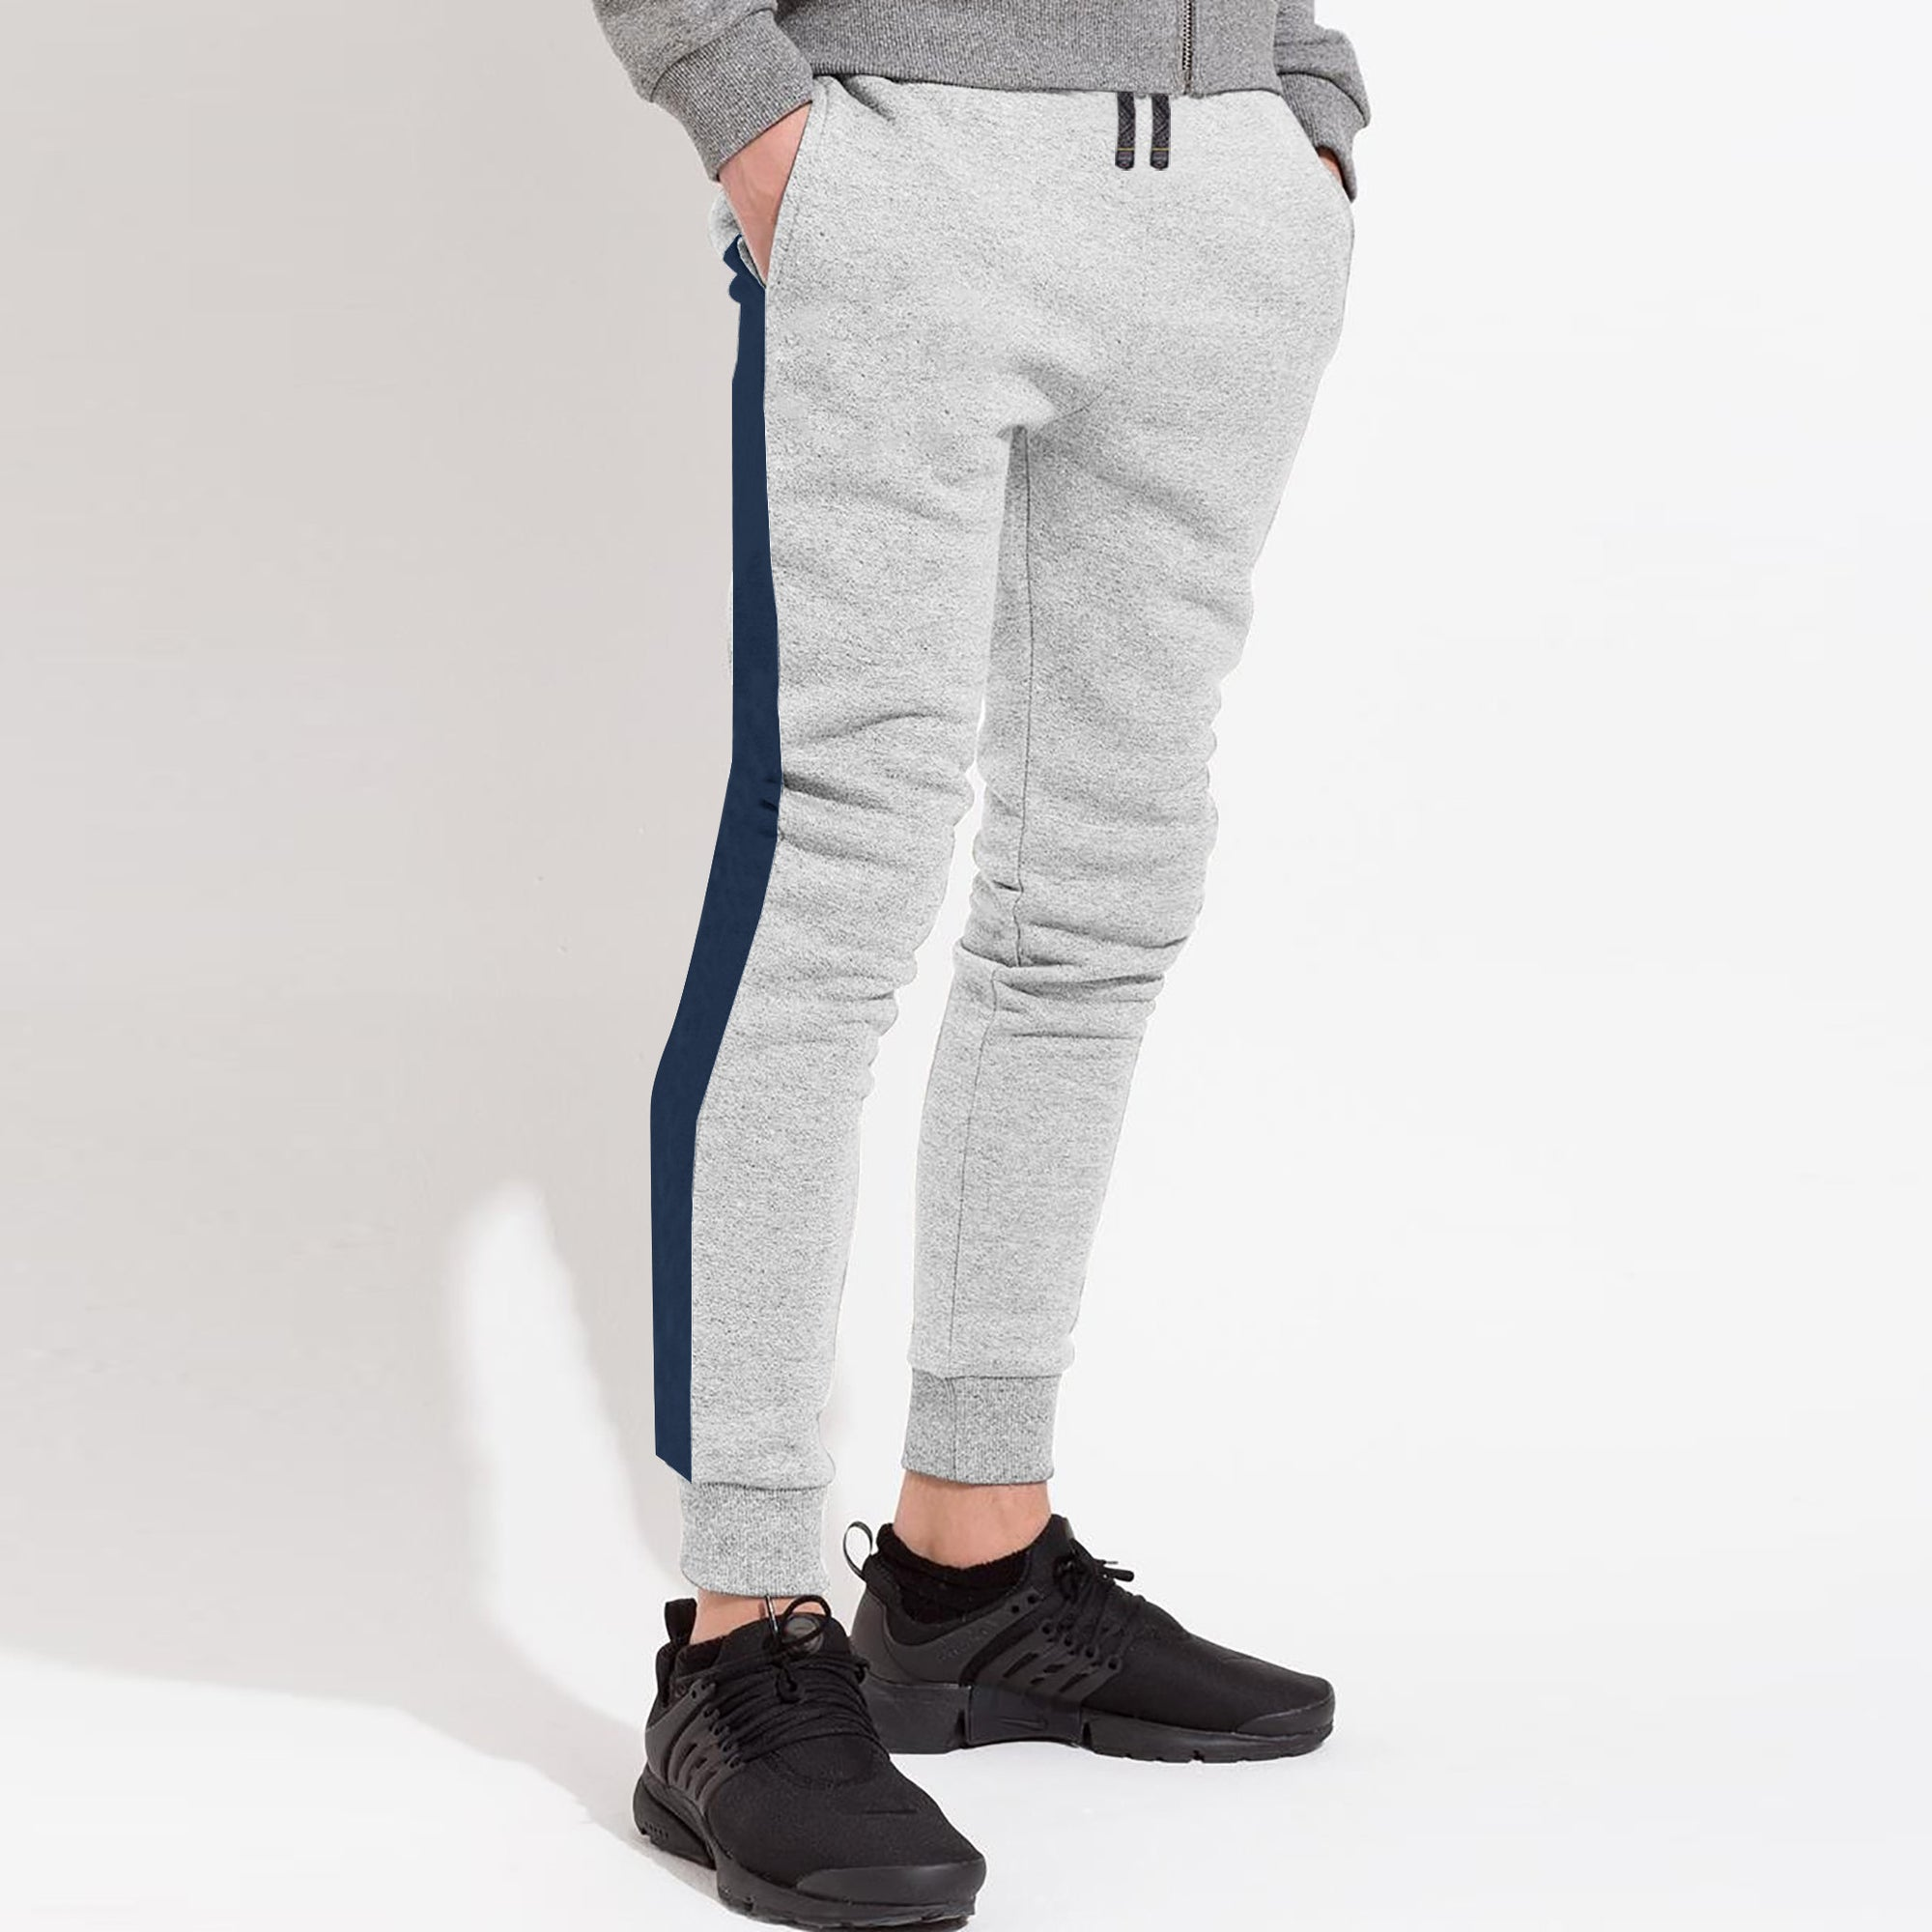 Next Slim Fit Jogger Trouser For Kids-Grey Melange with Navy Panels-SP2603